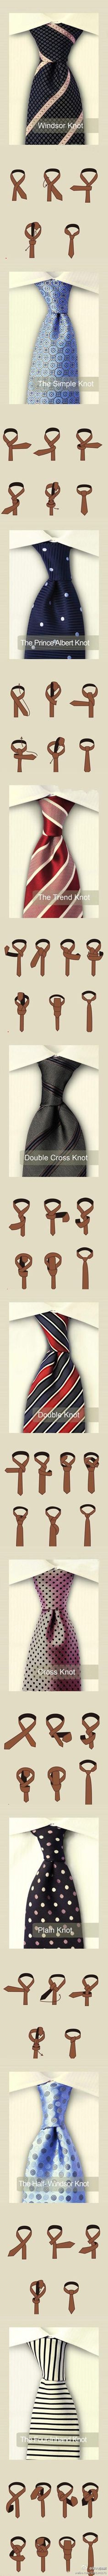 Every girl should be able to tie her man's tie :)